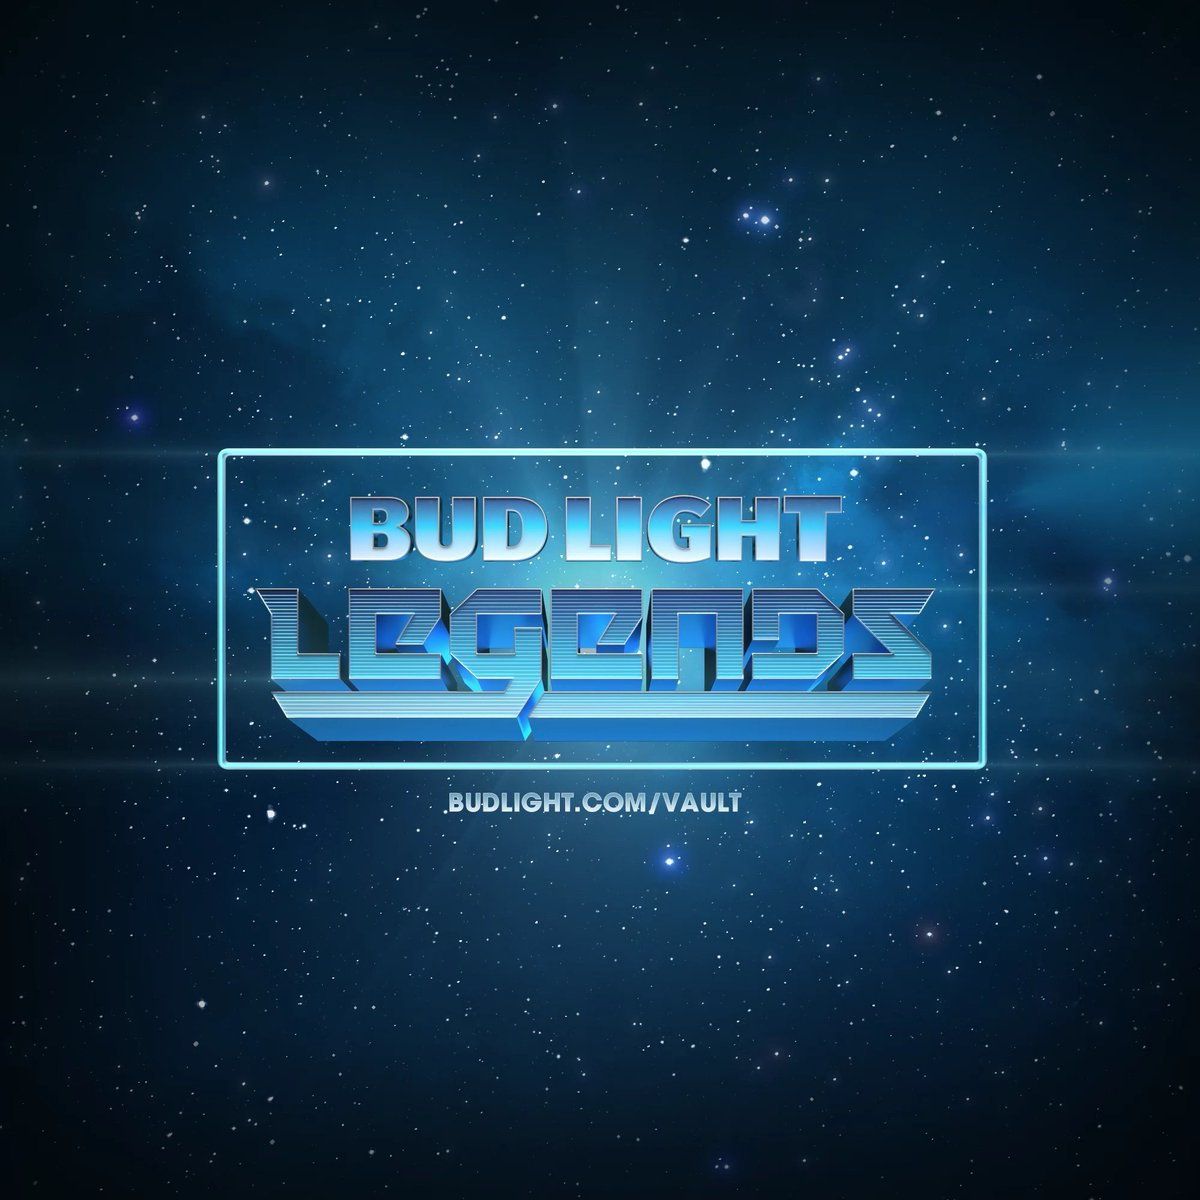 Welcome to where the Legendary live #BudLightLegends